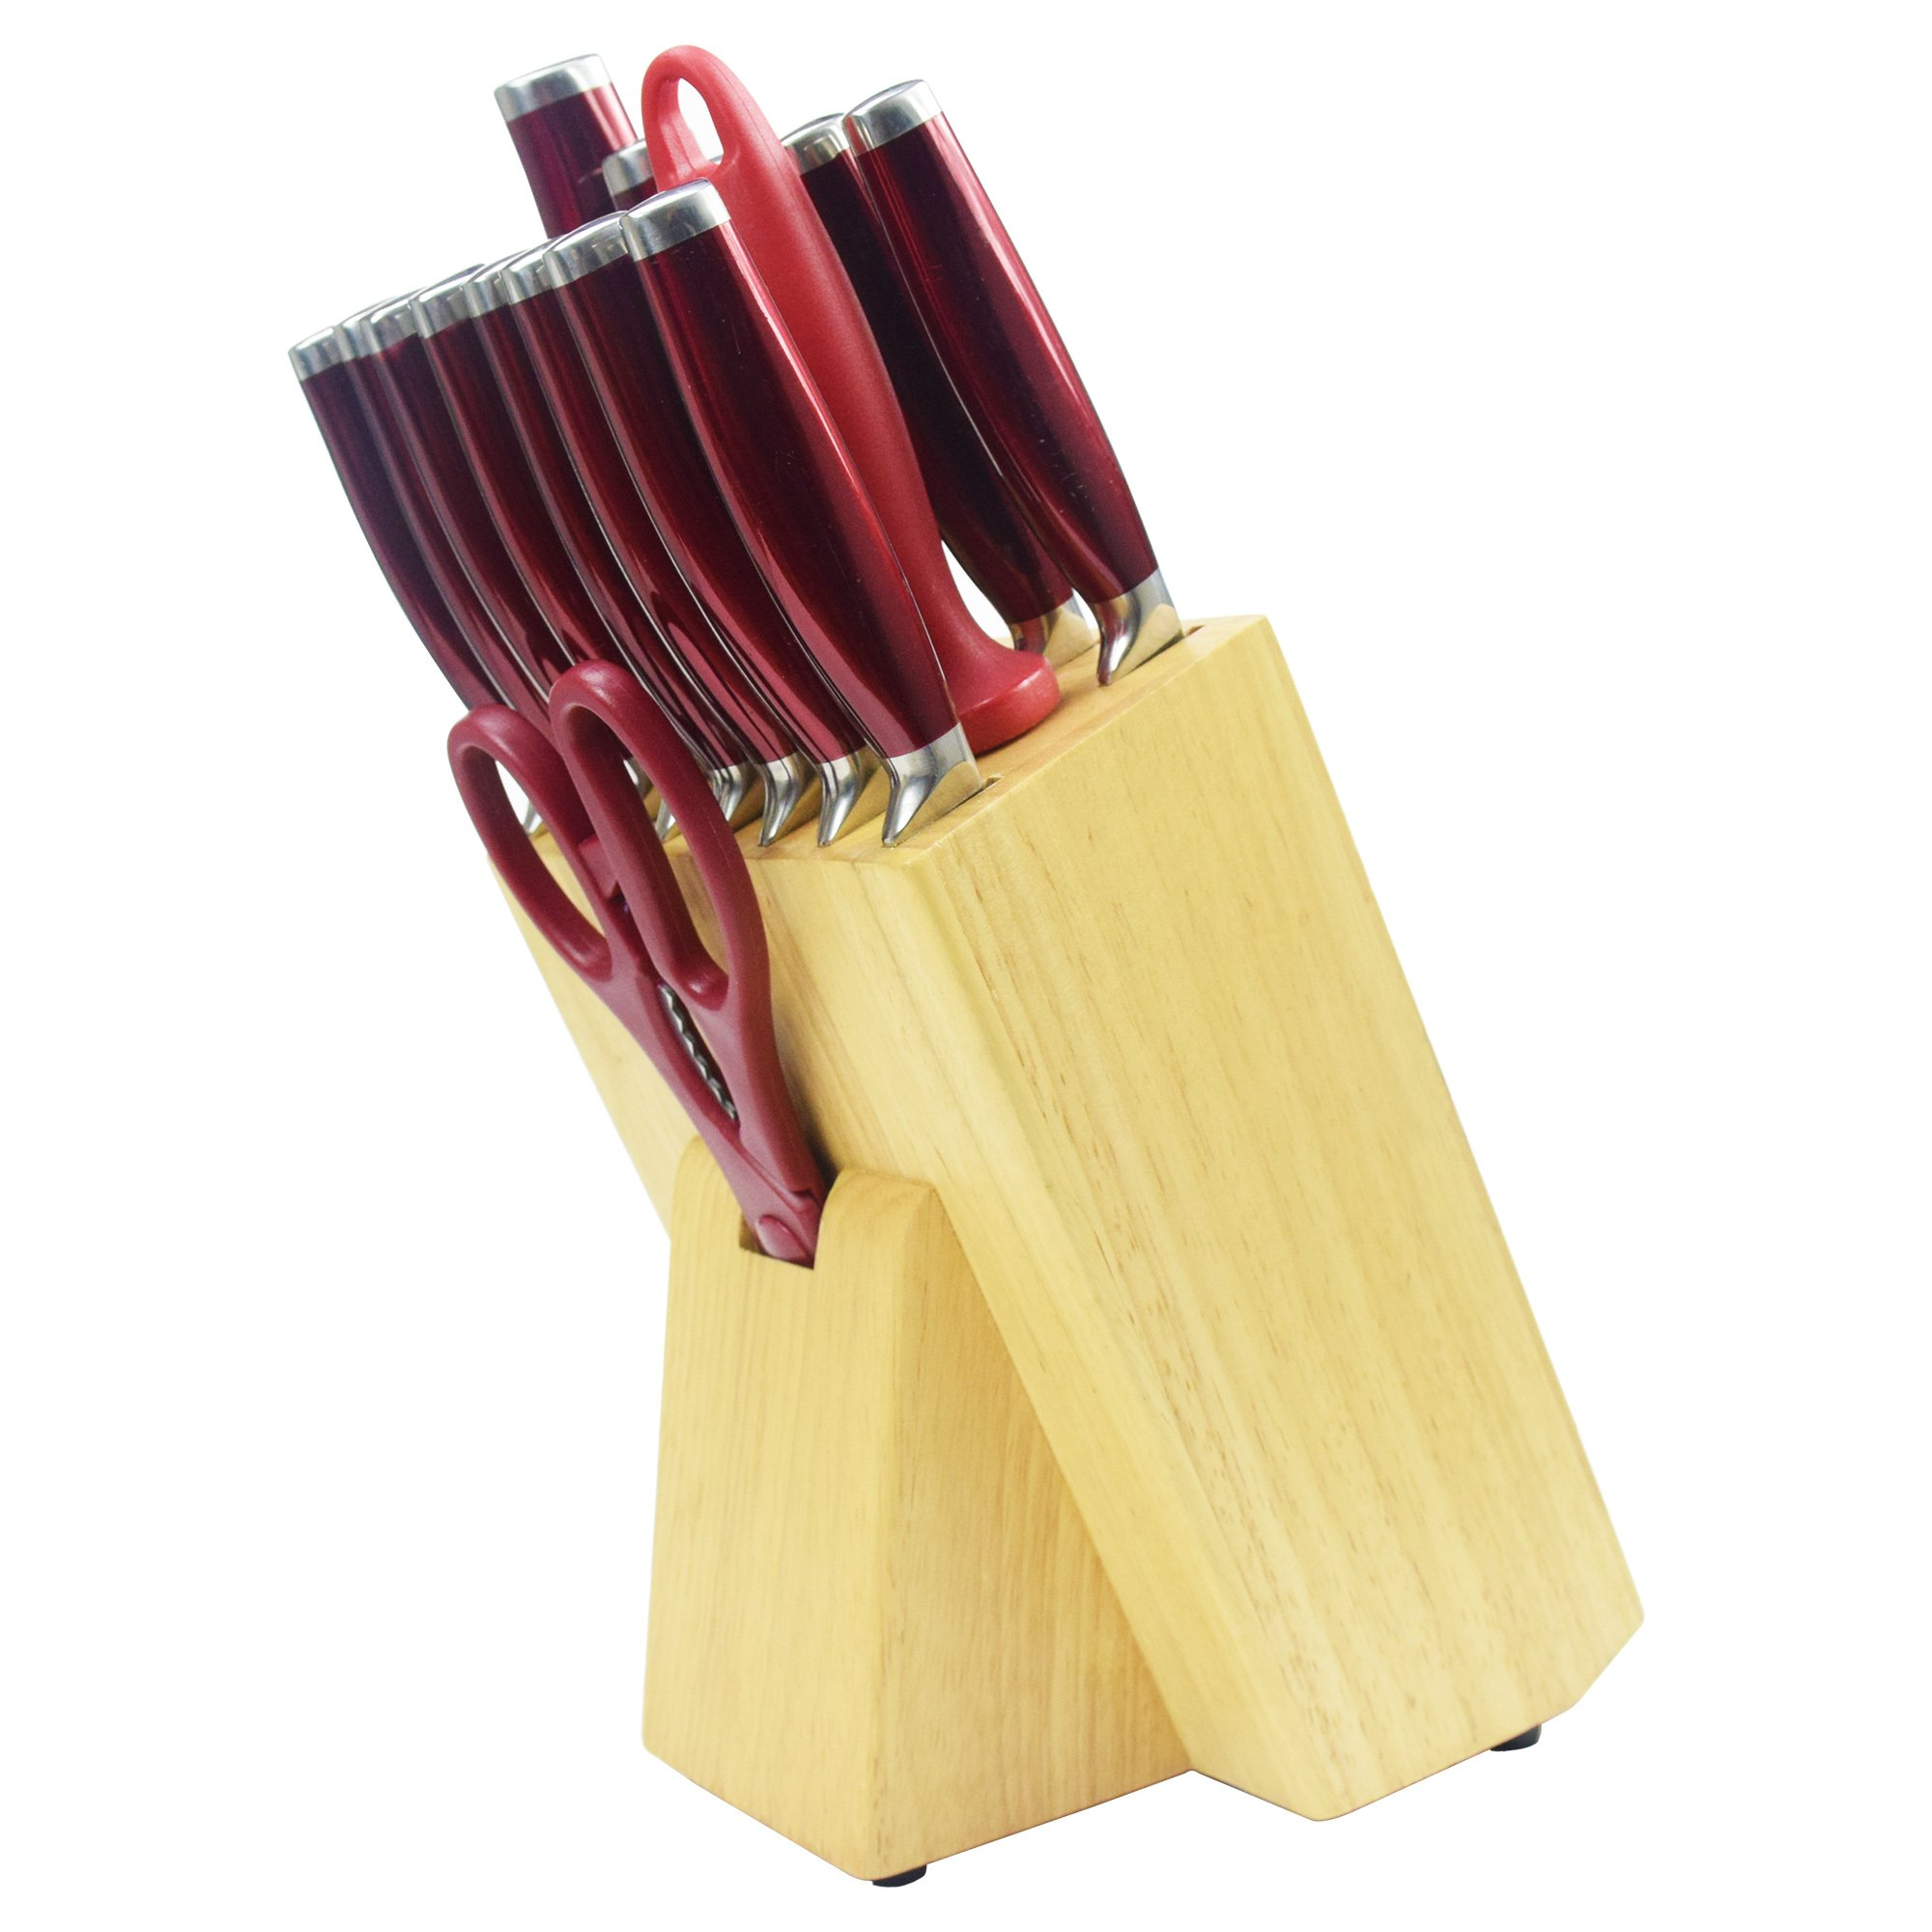 red kitchen knives chef knife set 16pcs red professional stainless steel kitchen knife block set walmart com 7285